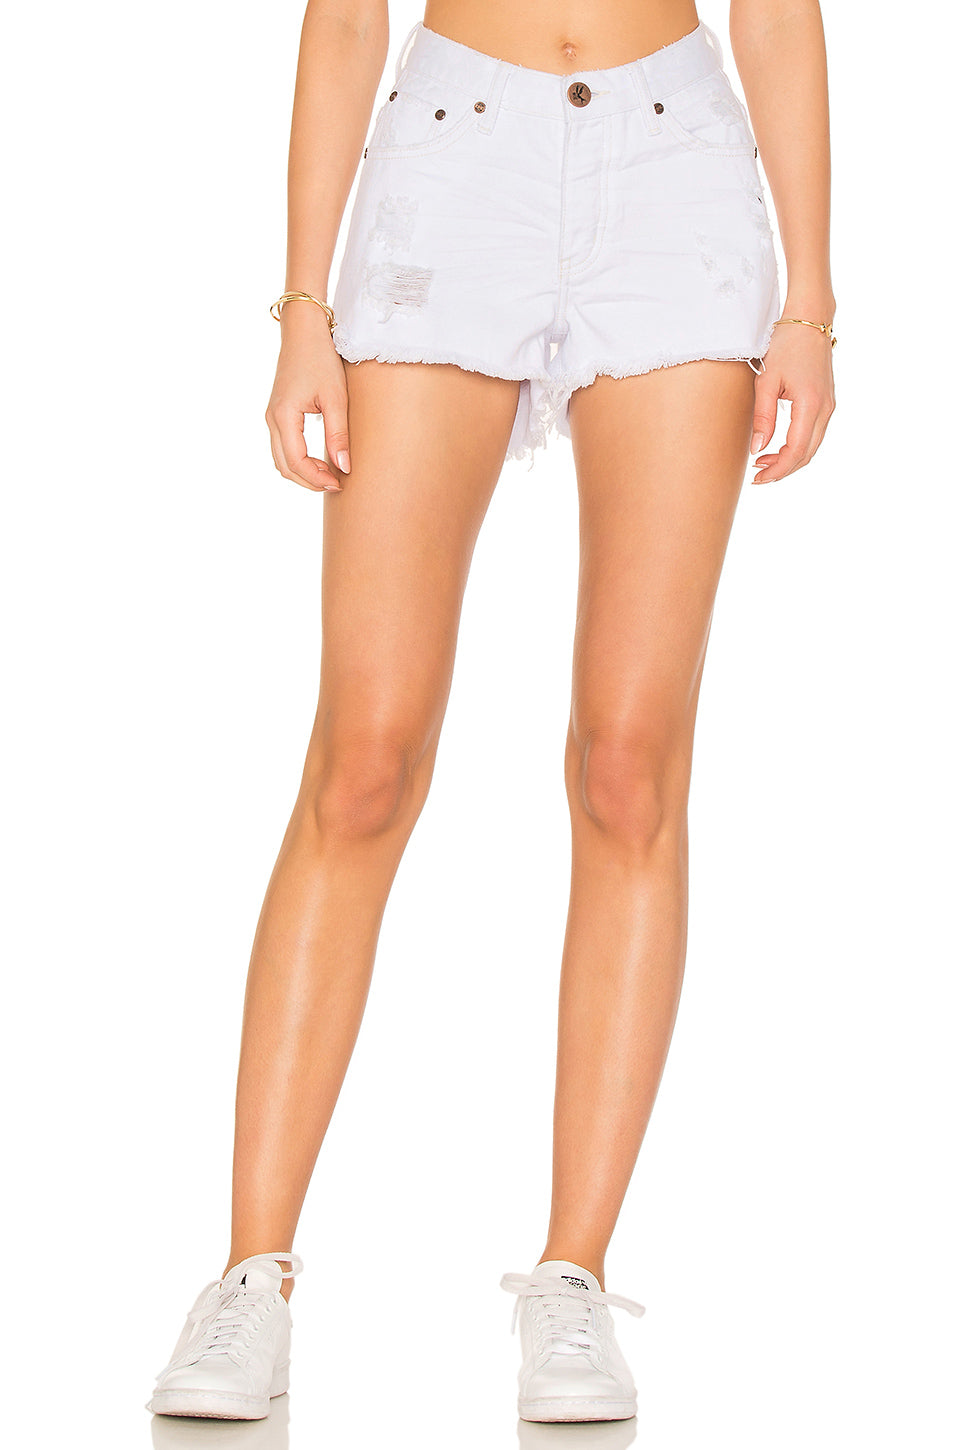 3cebab26e77 One Teaspoon White Beauty Bonita High Waist Denim Shorts – Bliss Bandits